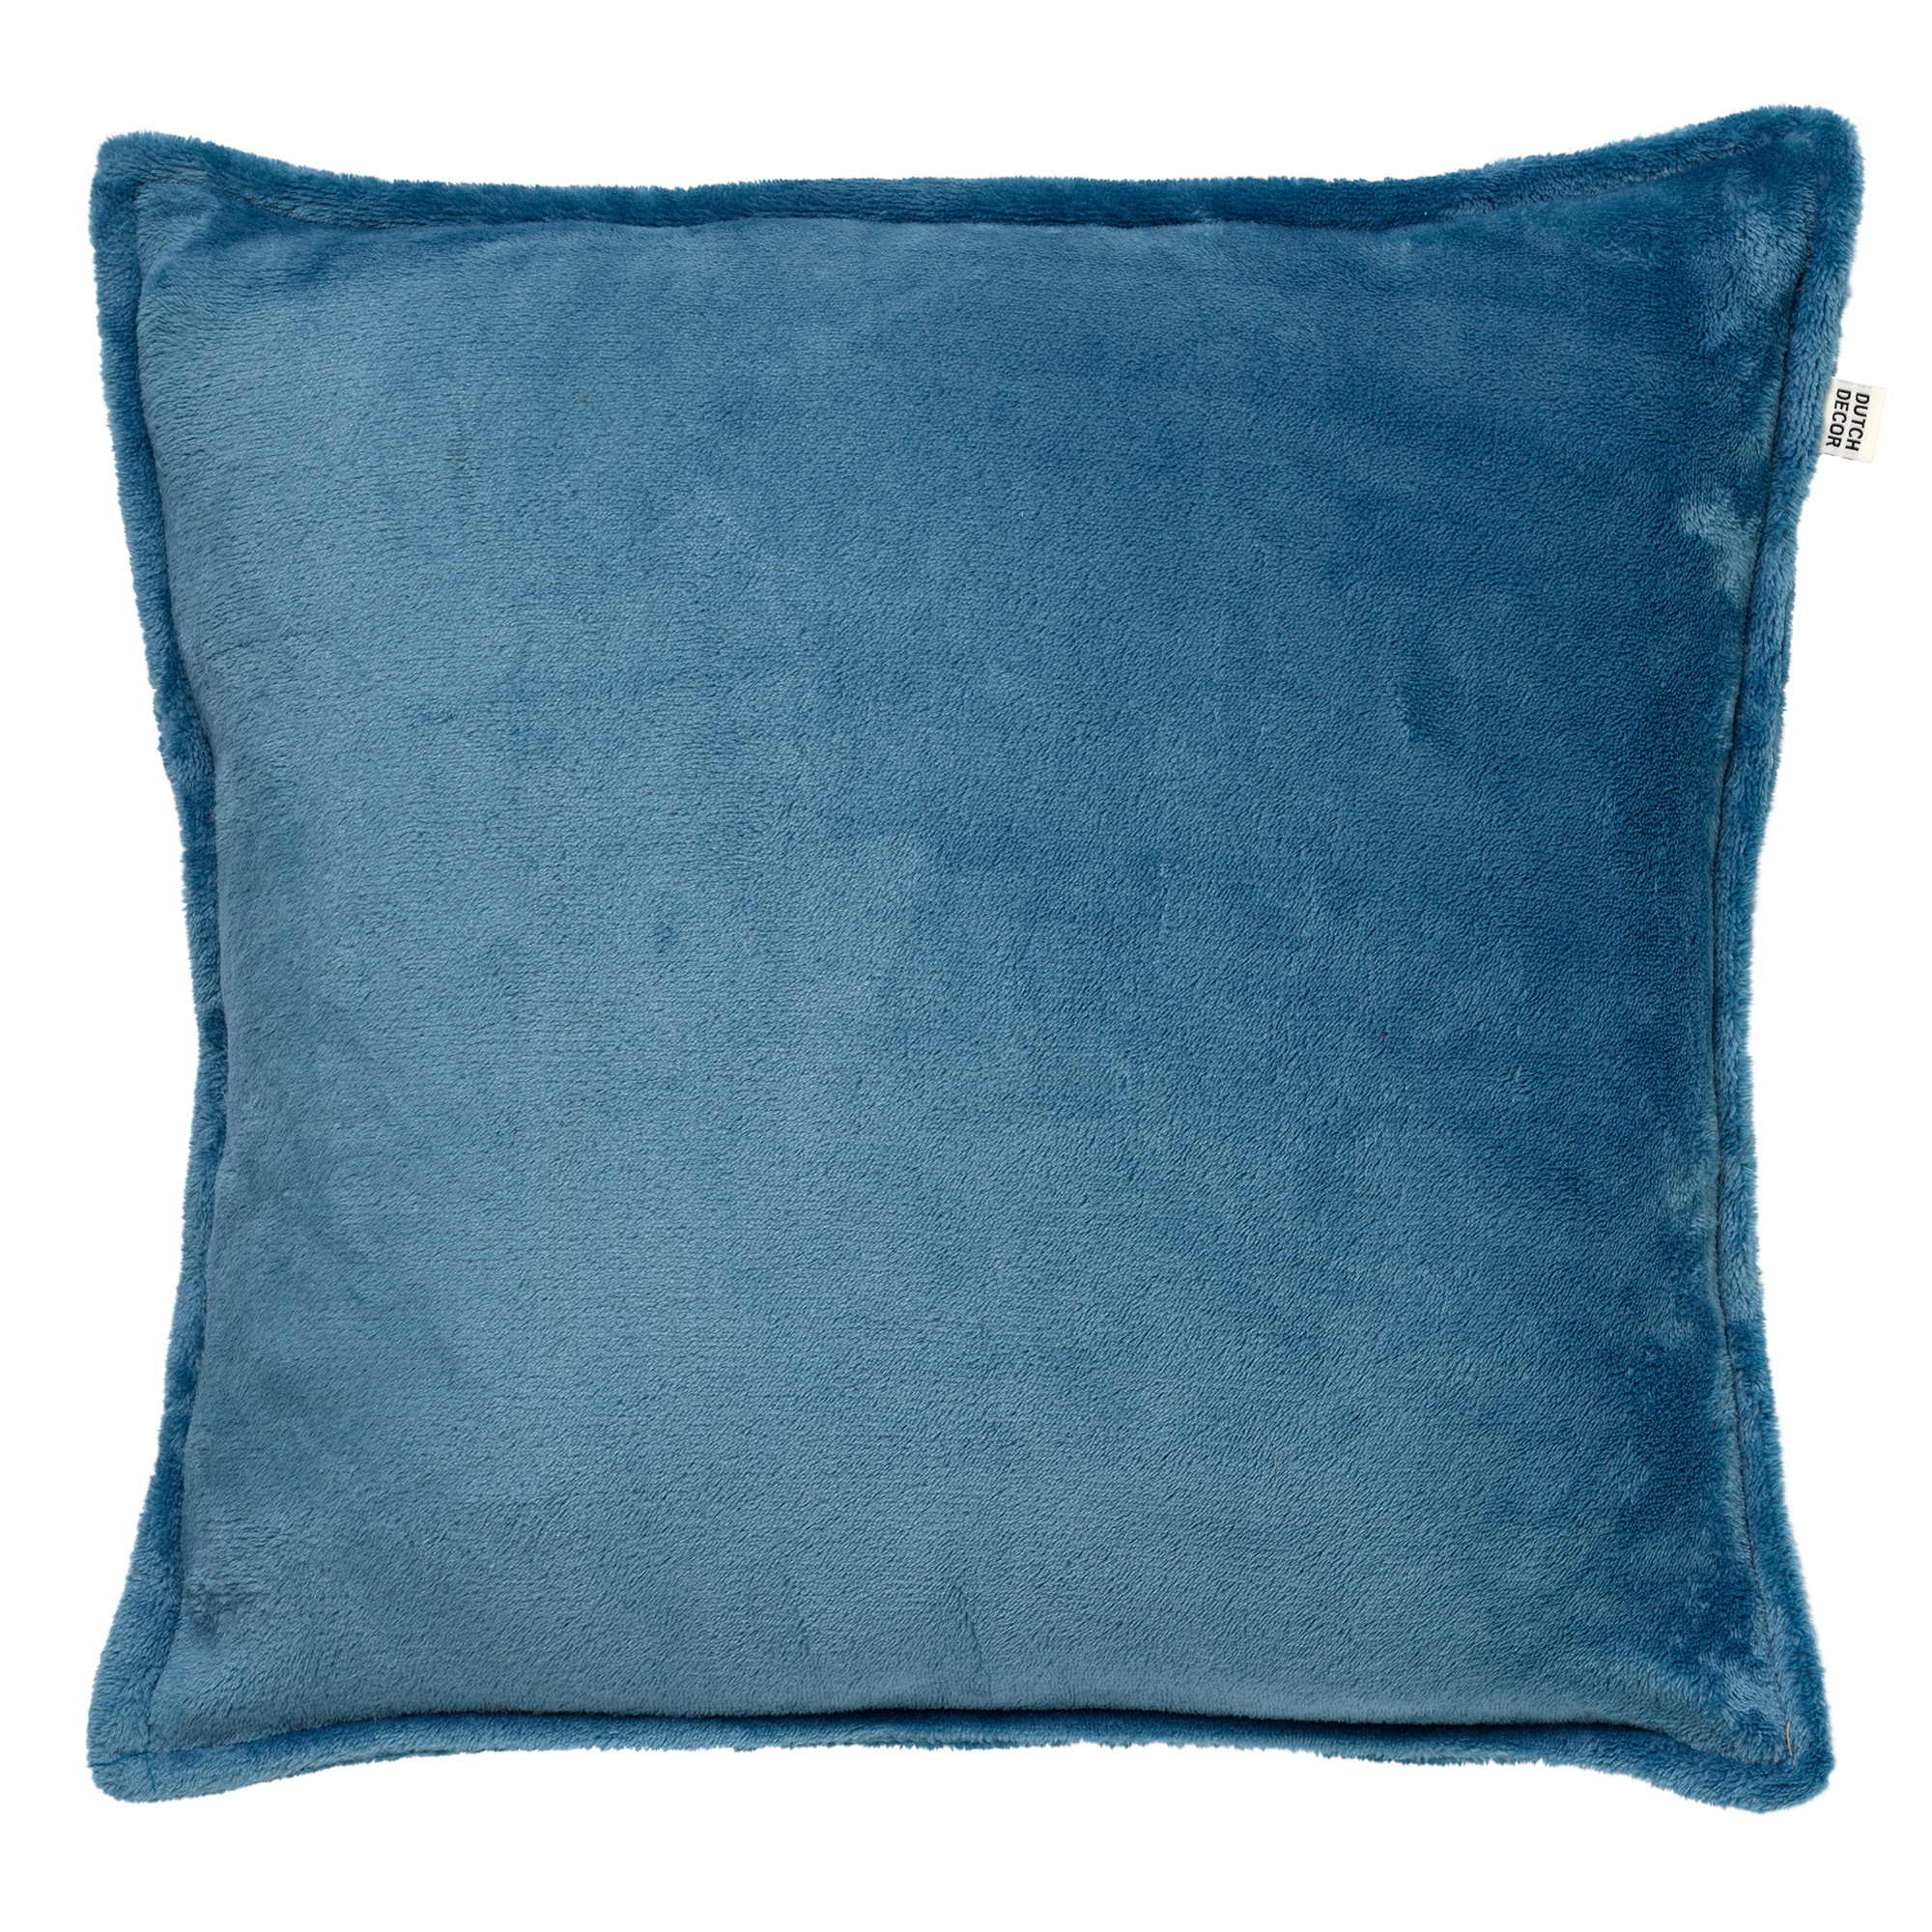 CILLY - Kussenhoes van fleece Provincial Blue 45x45 cm